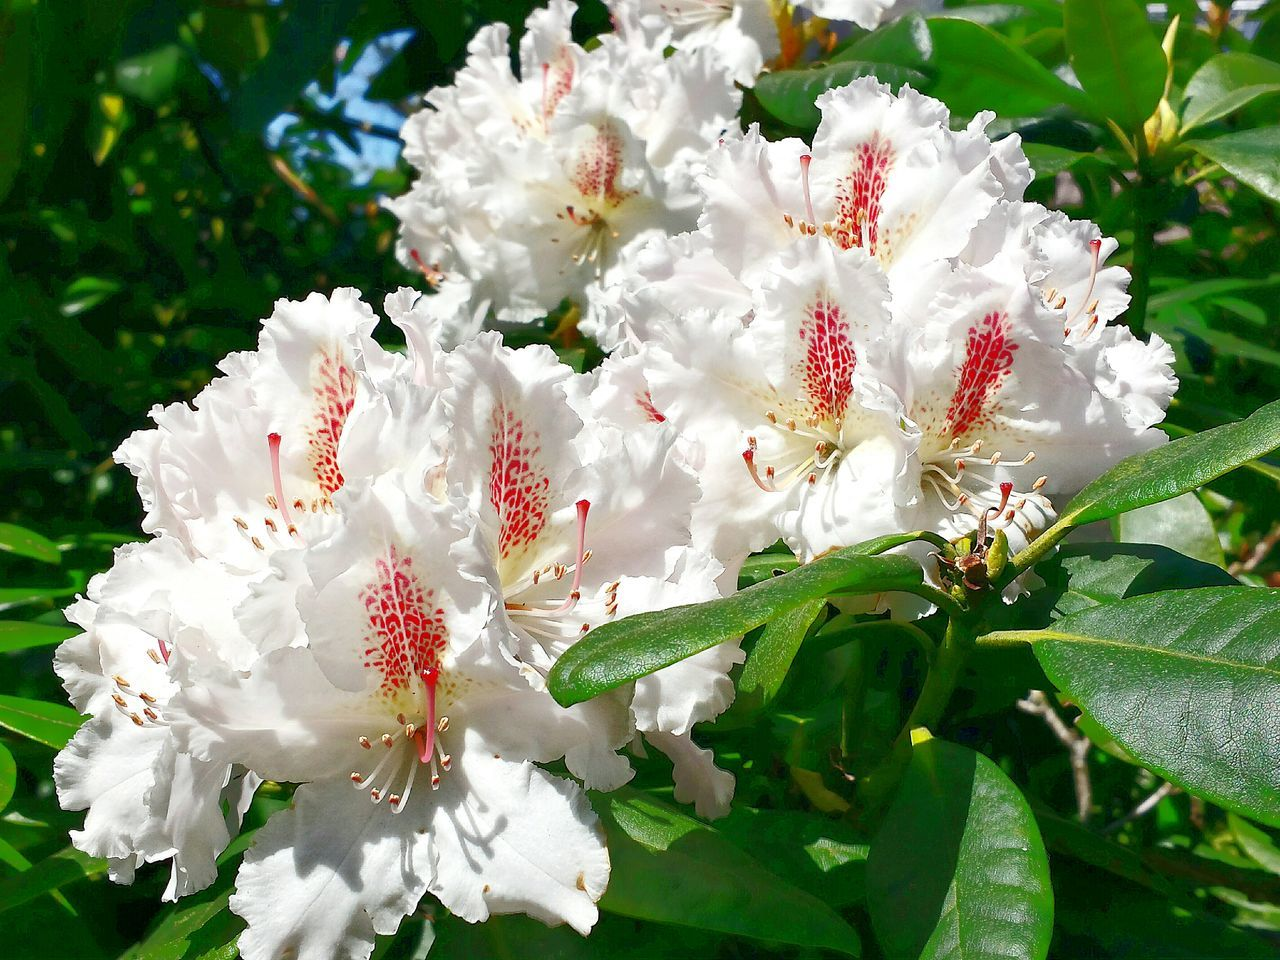 White Rhododendron Full In Blossom Beautiful Nature Ladyphotographerofthemonth Nature's Diversities Wonderful Nature Blütenzauber Zauber Des Frühlings Blütenschönheit Blütenzart Blossoming Beauty Sunkissed Blütenrausch Blossoming Magic Studies Of Botany Magical Blossoms Rhododendron Blossoms In Voller Blüte Studies Of Whiteness White Album Beliebte Fotos Rhododendron Learn & Shoot: Layering Learn & Shoot: Composition Still Life